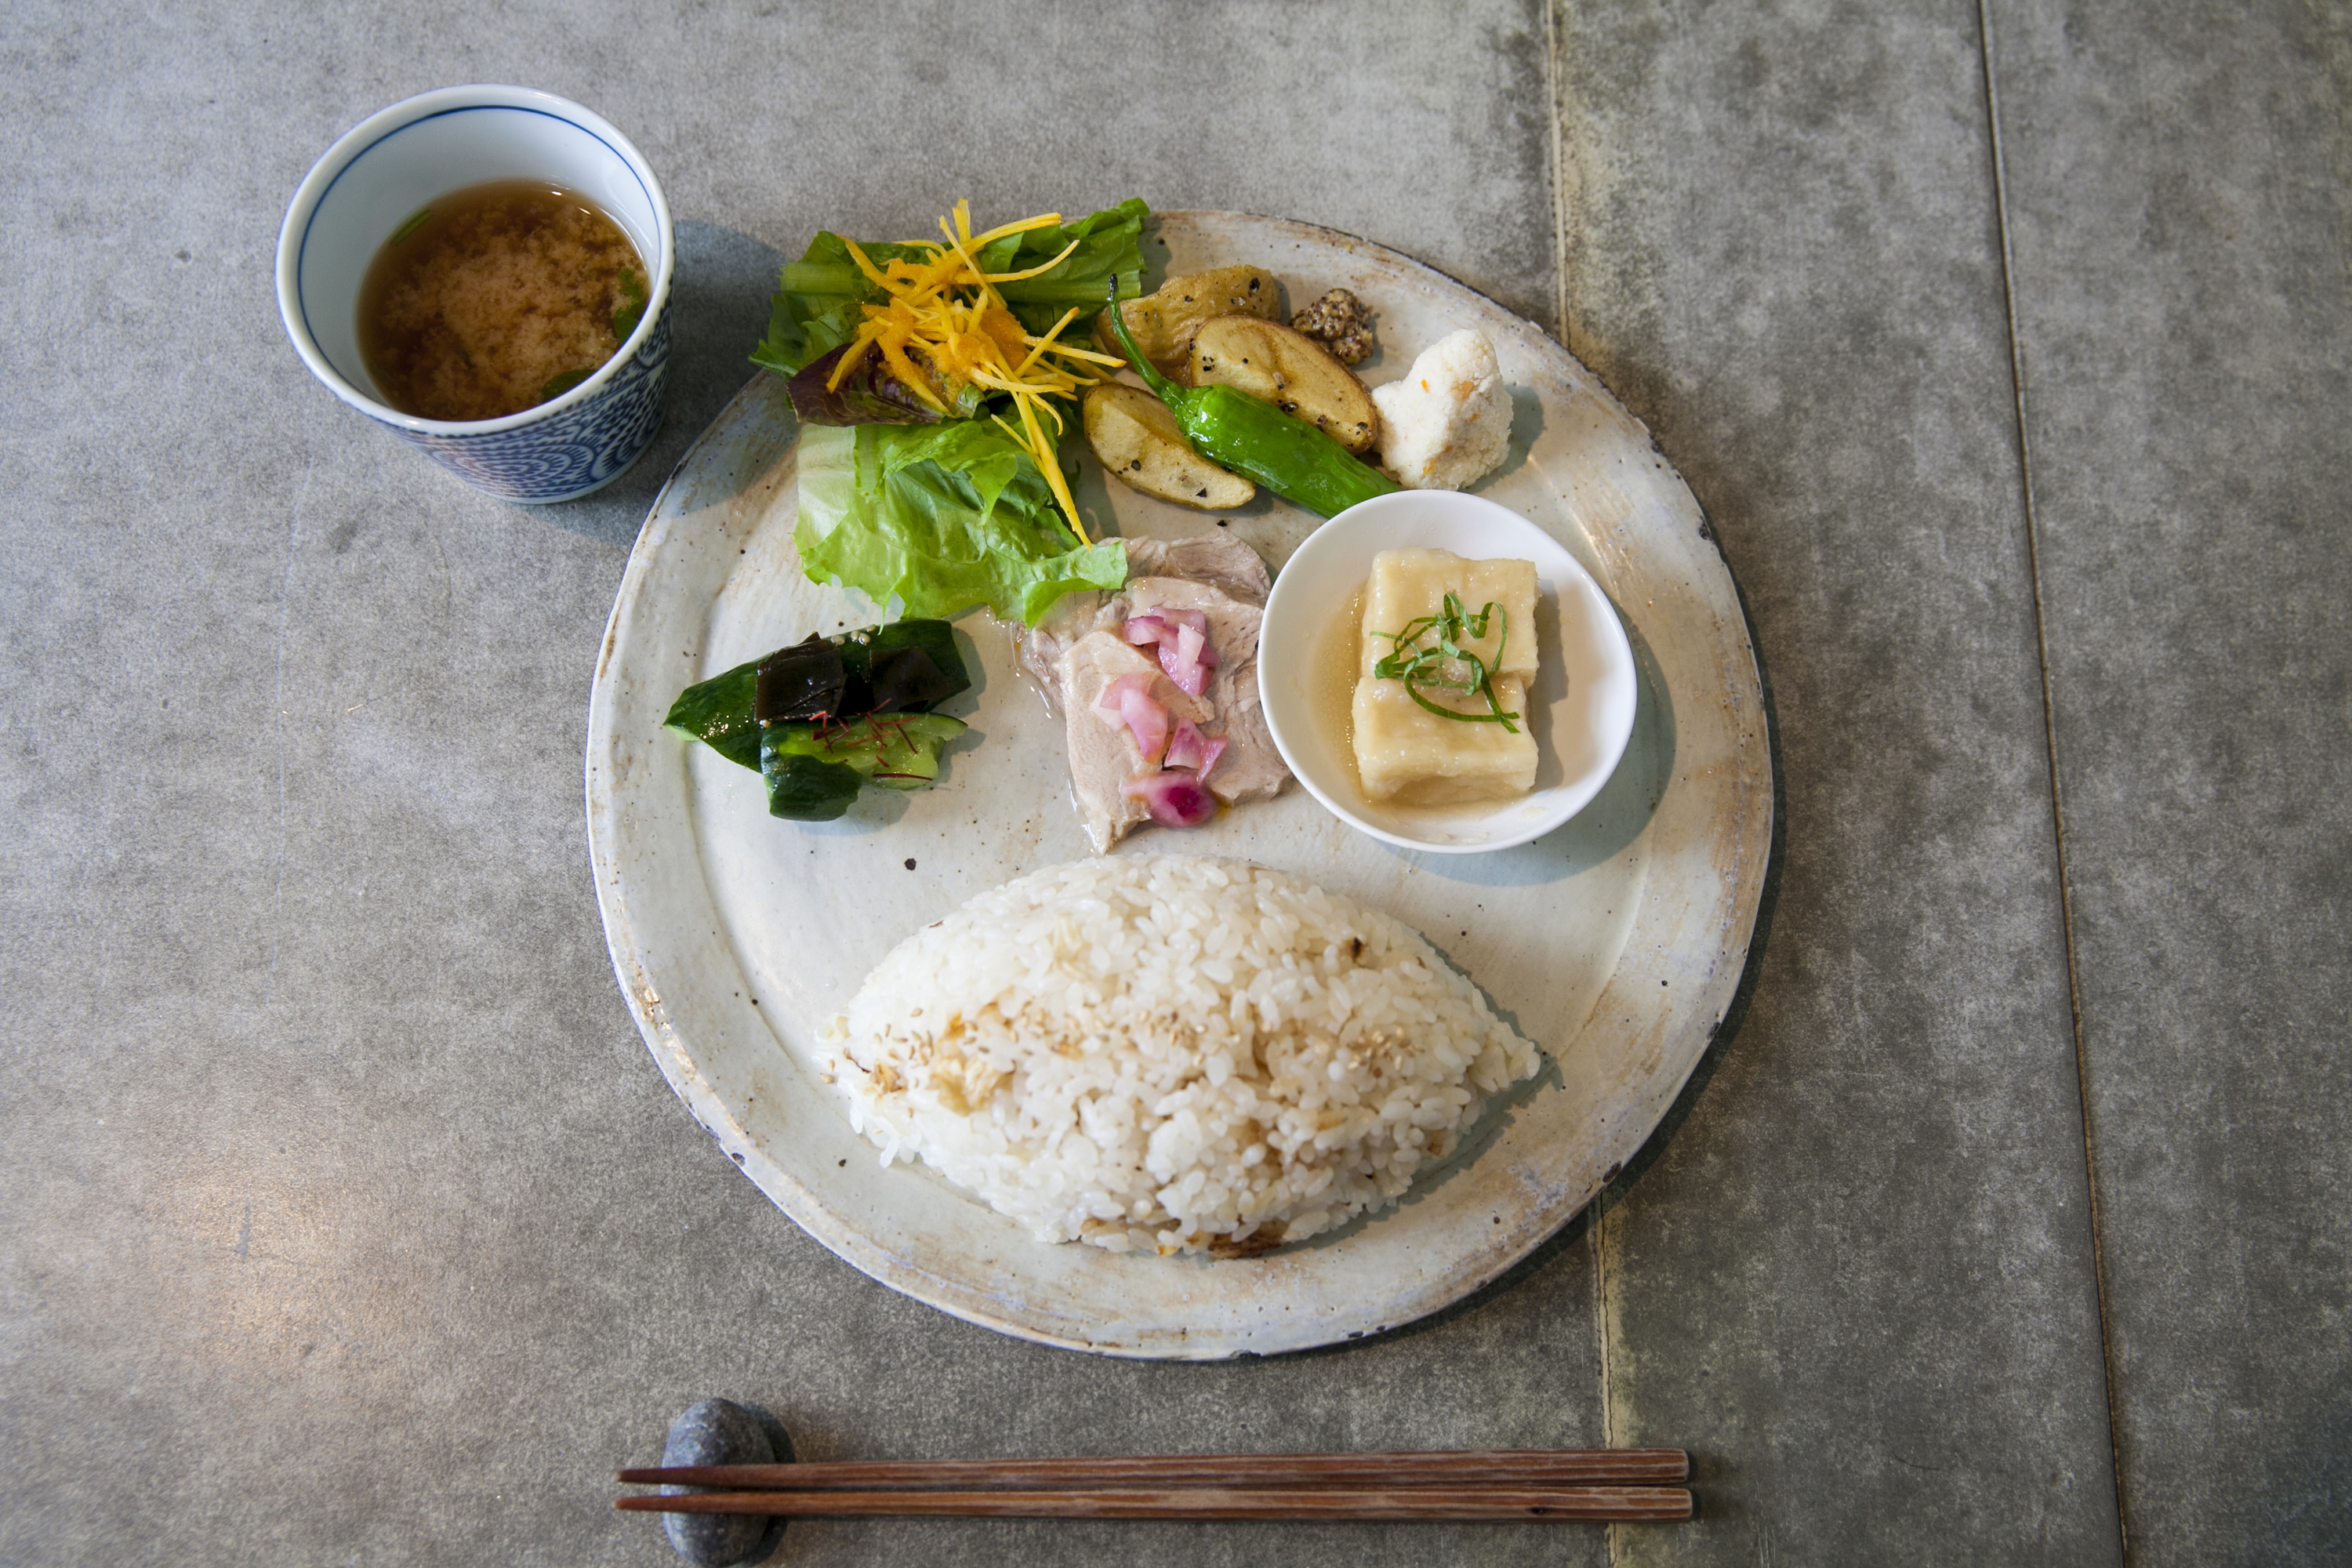 Dig into Japanese lunch…